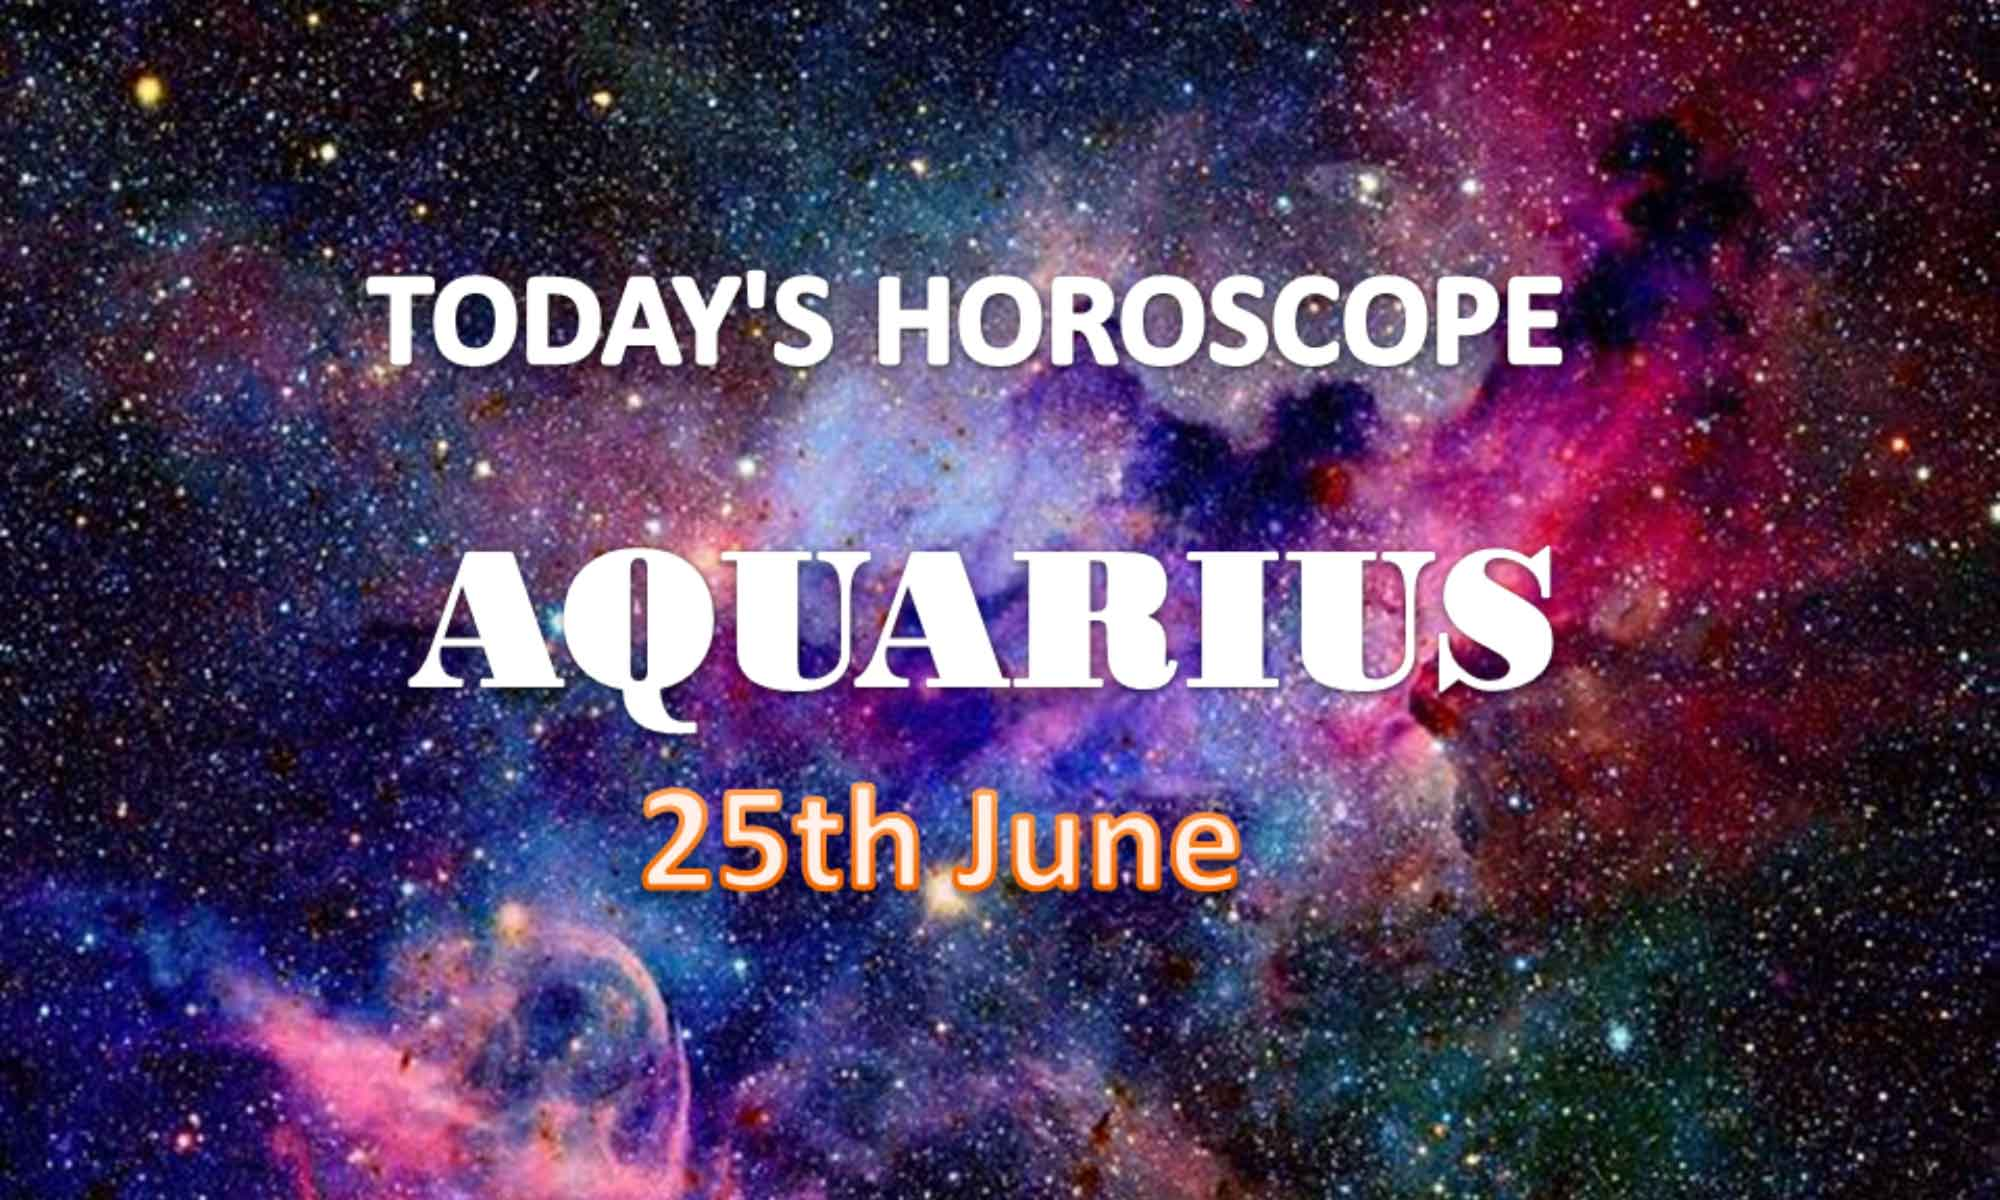 aquarius daily horoscope for today friday june 25th 2021